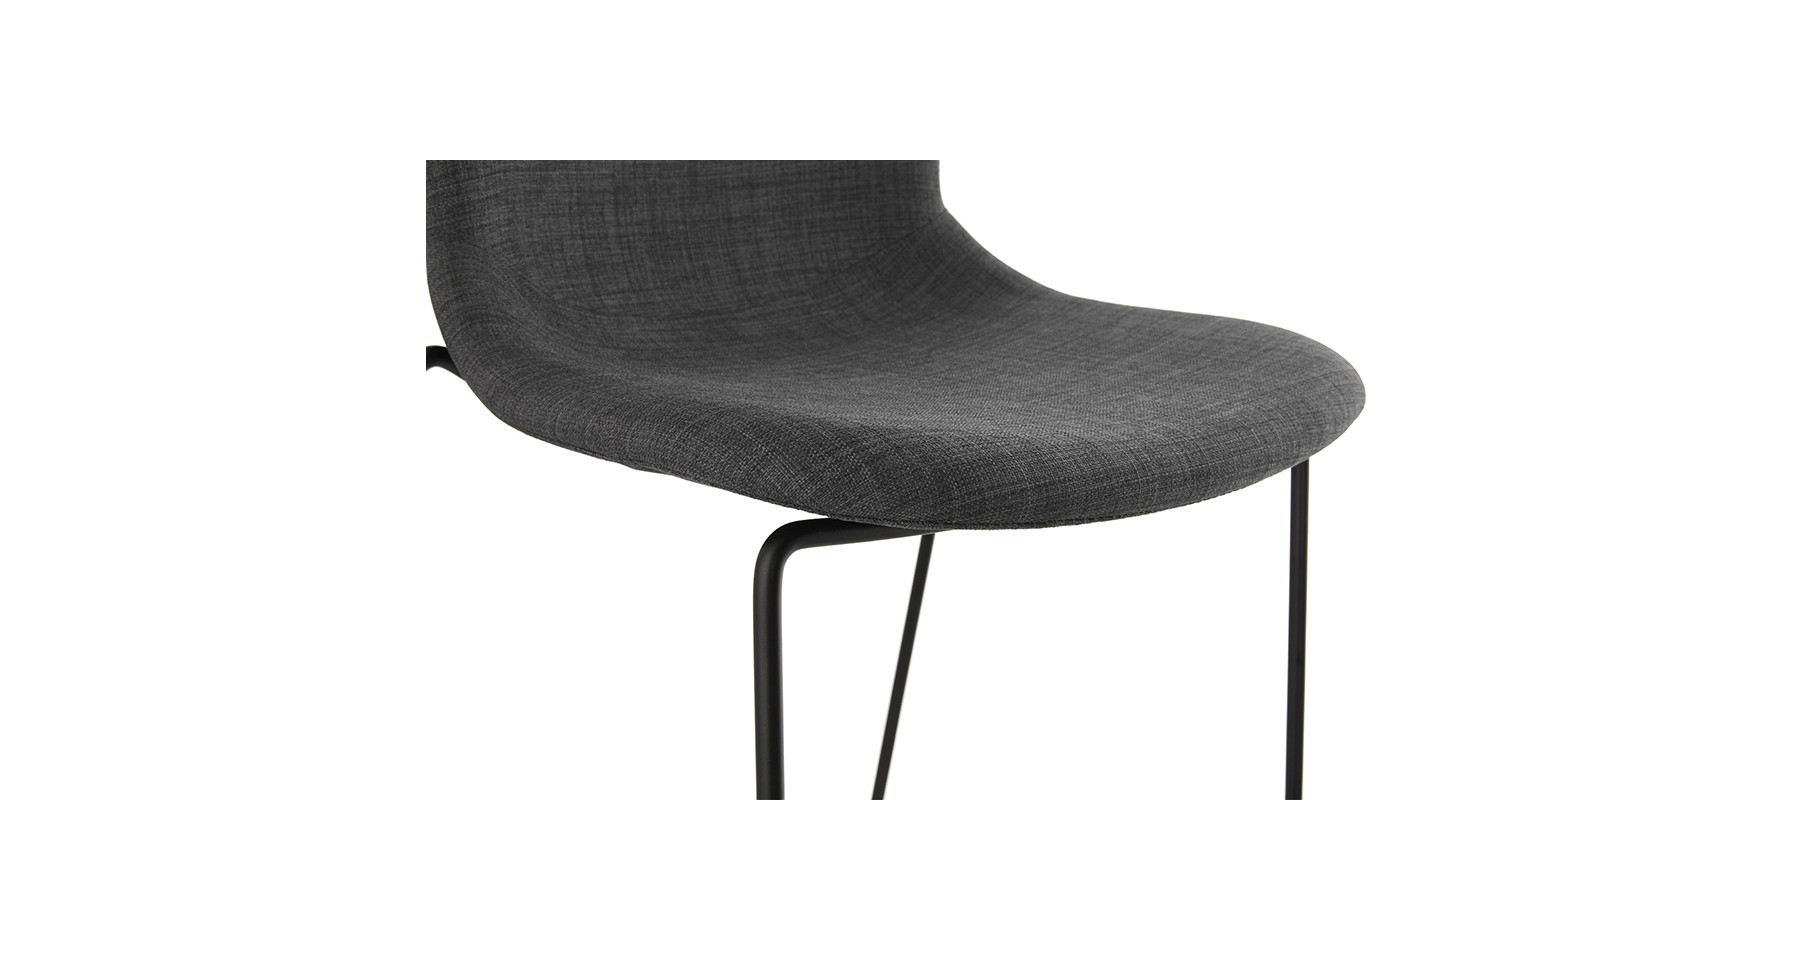 chaise de bar design en tissu gris fonc et m tal noir. Black Bedroom Furniture Sets. Home Design Ideas